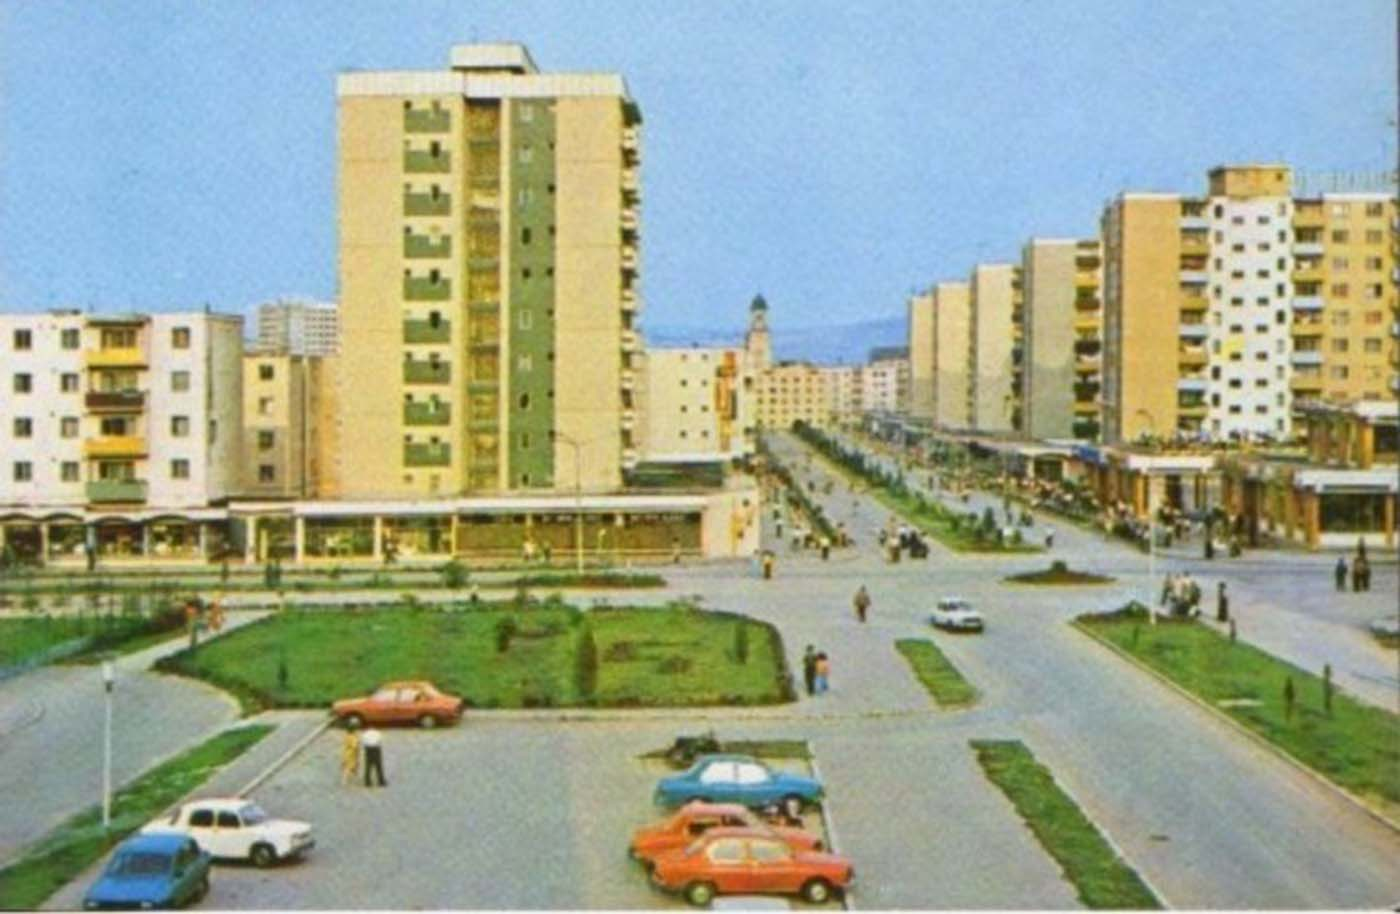 After the boulevard was finished. Romania under the rule of the Ceausescu was a bleak and strange place.